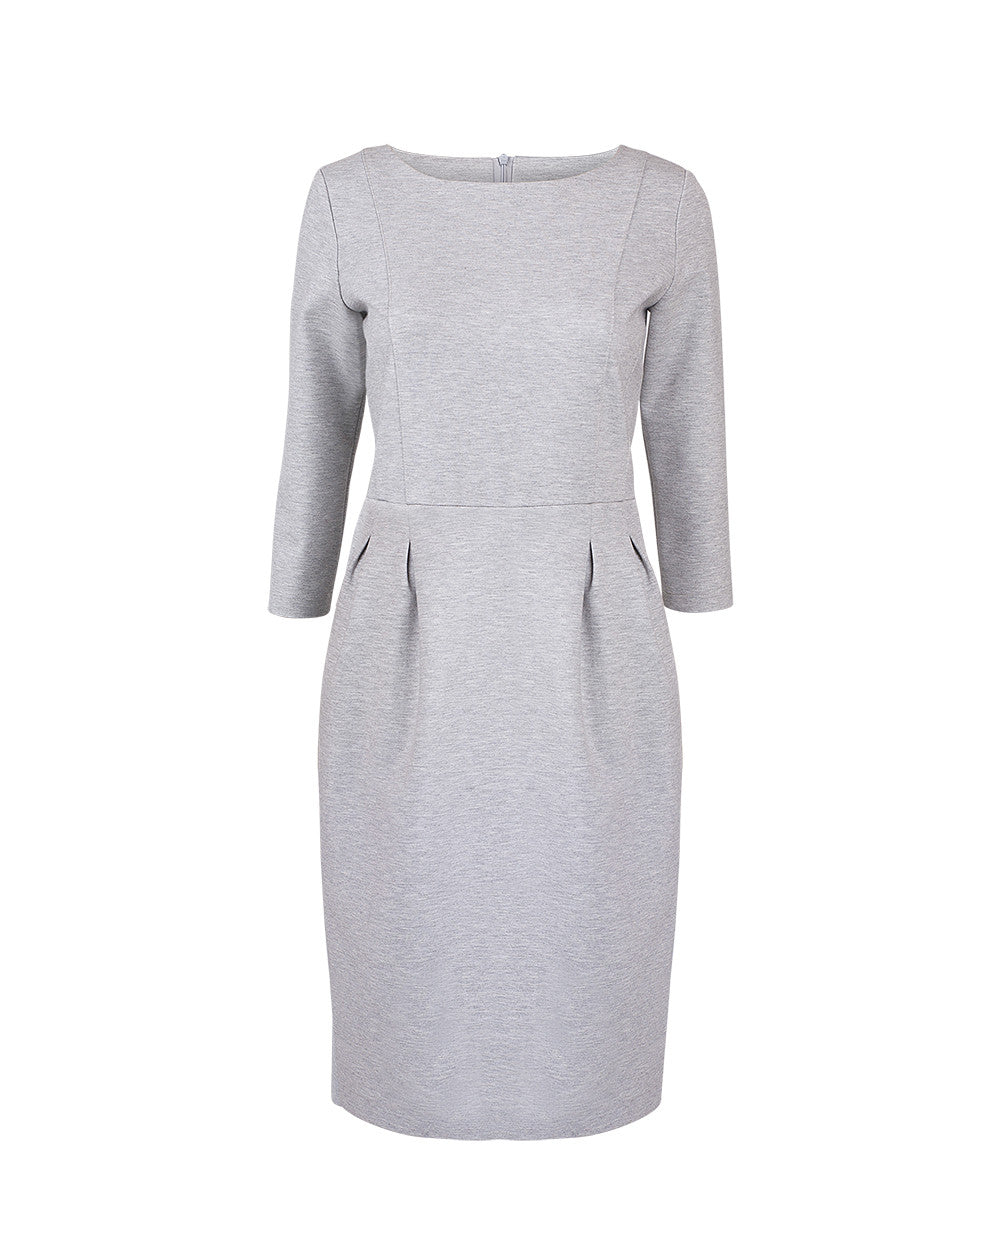 Grey heather tulip dress with sleeves falls above the knee, knee length